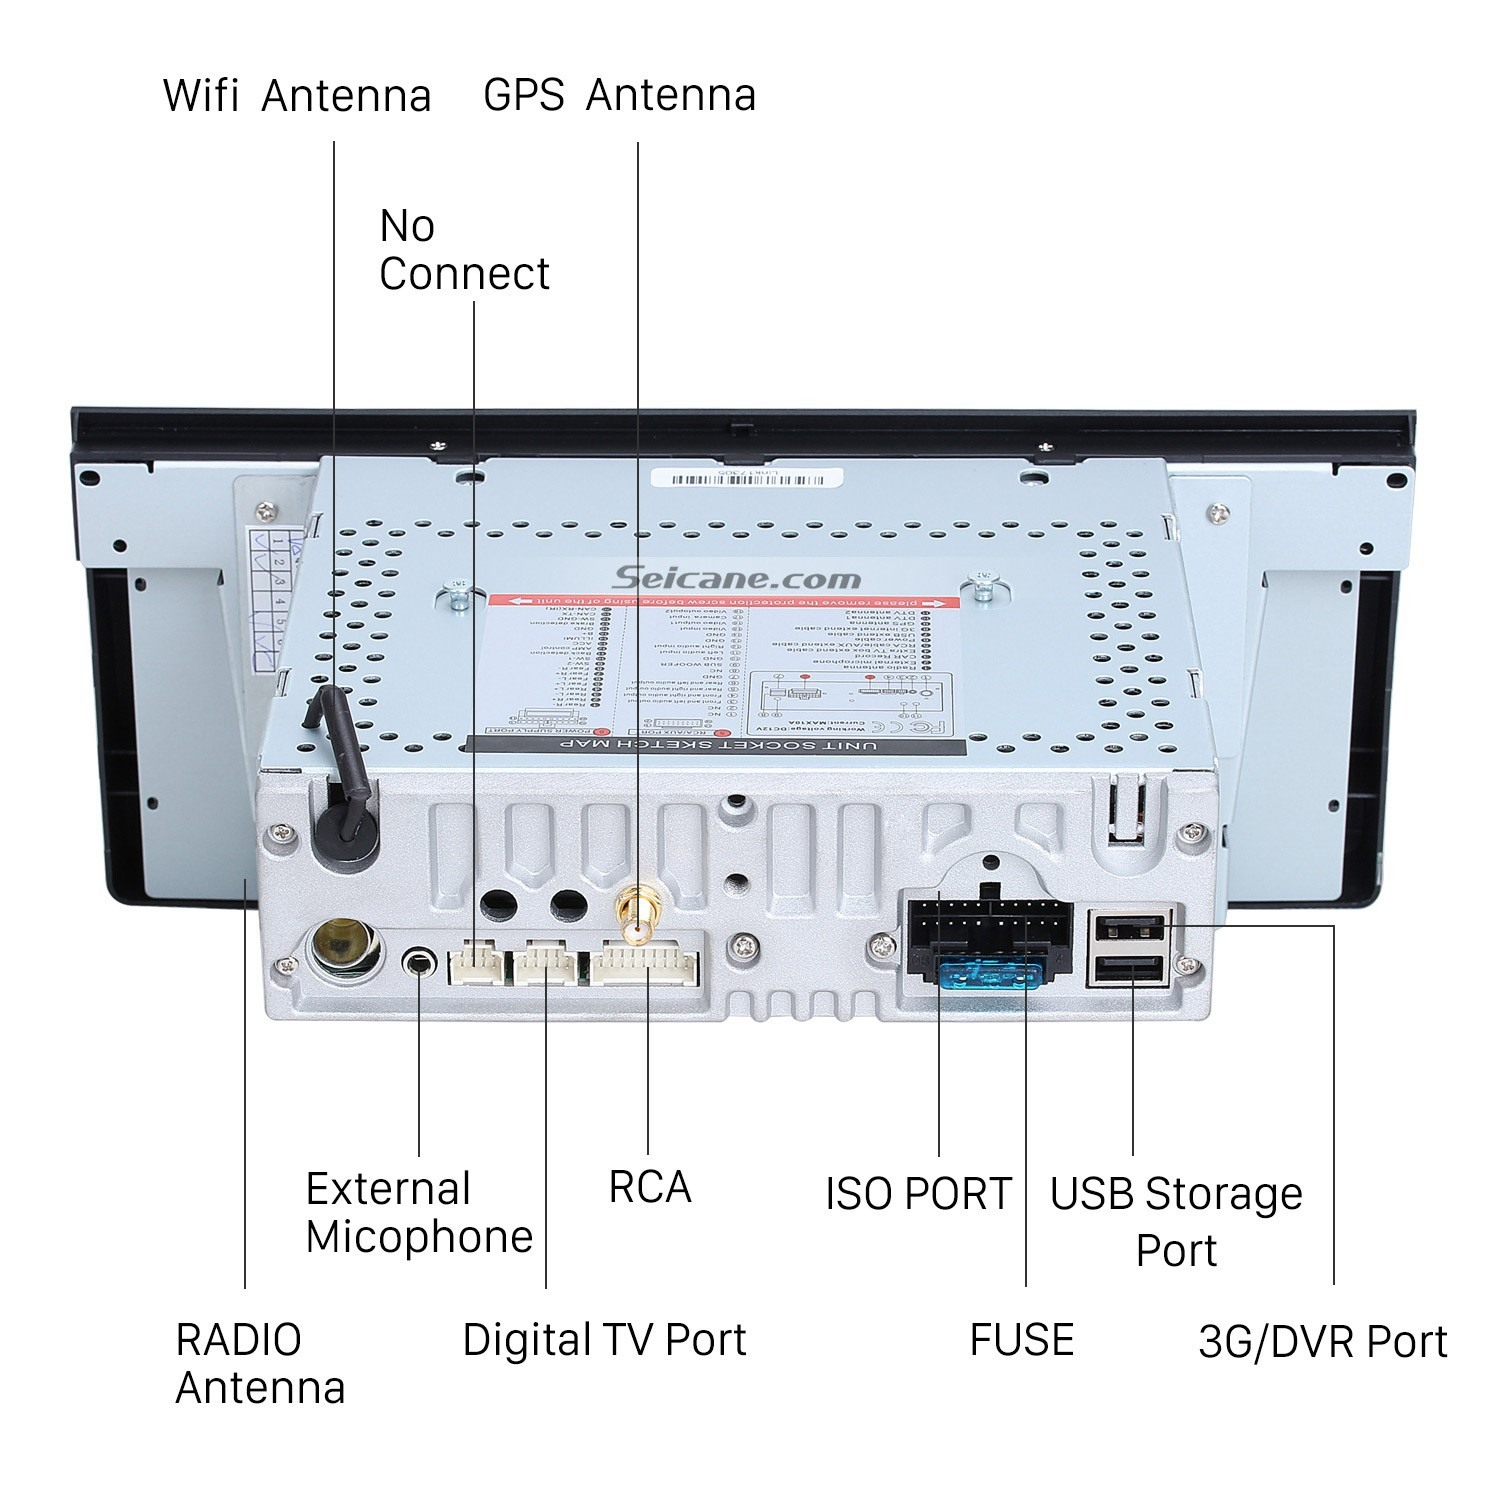 phone wiring diagram Download-Bmw Wiring Diagrams Best Cheap All In e android 6 0 2000 2007 Bmw X5 E53 3-m